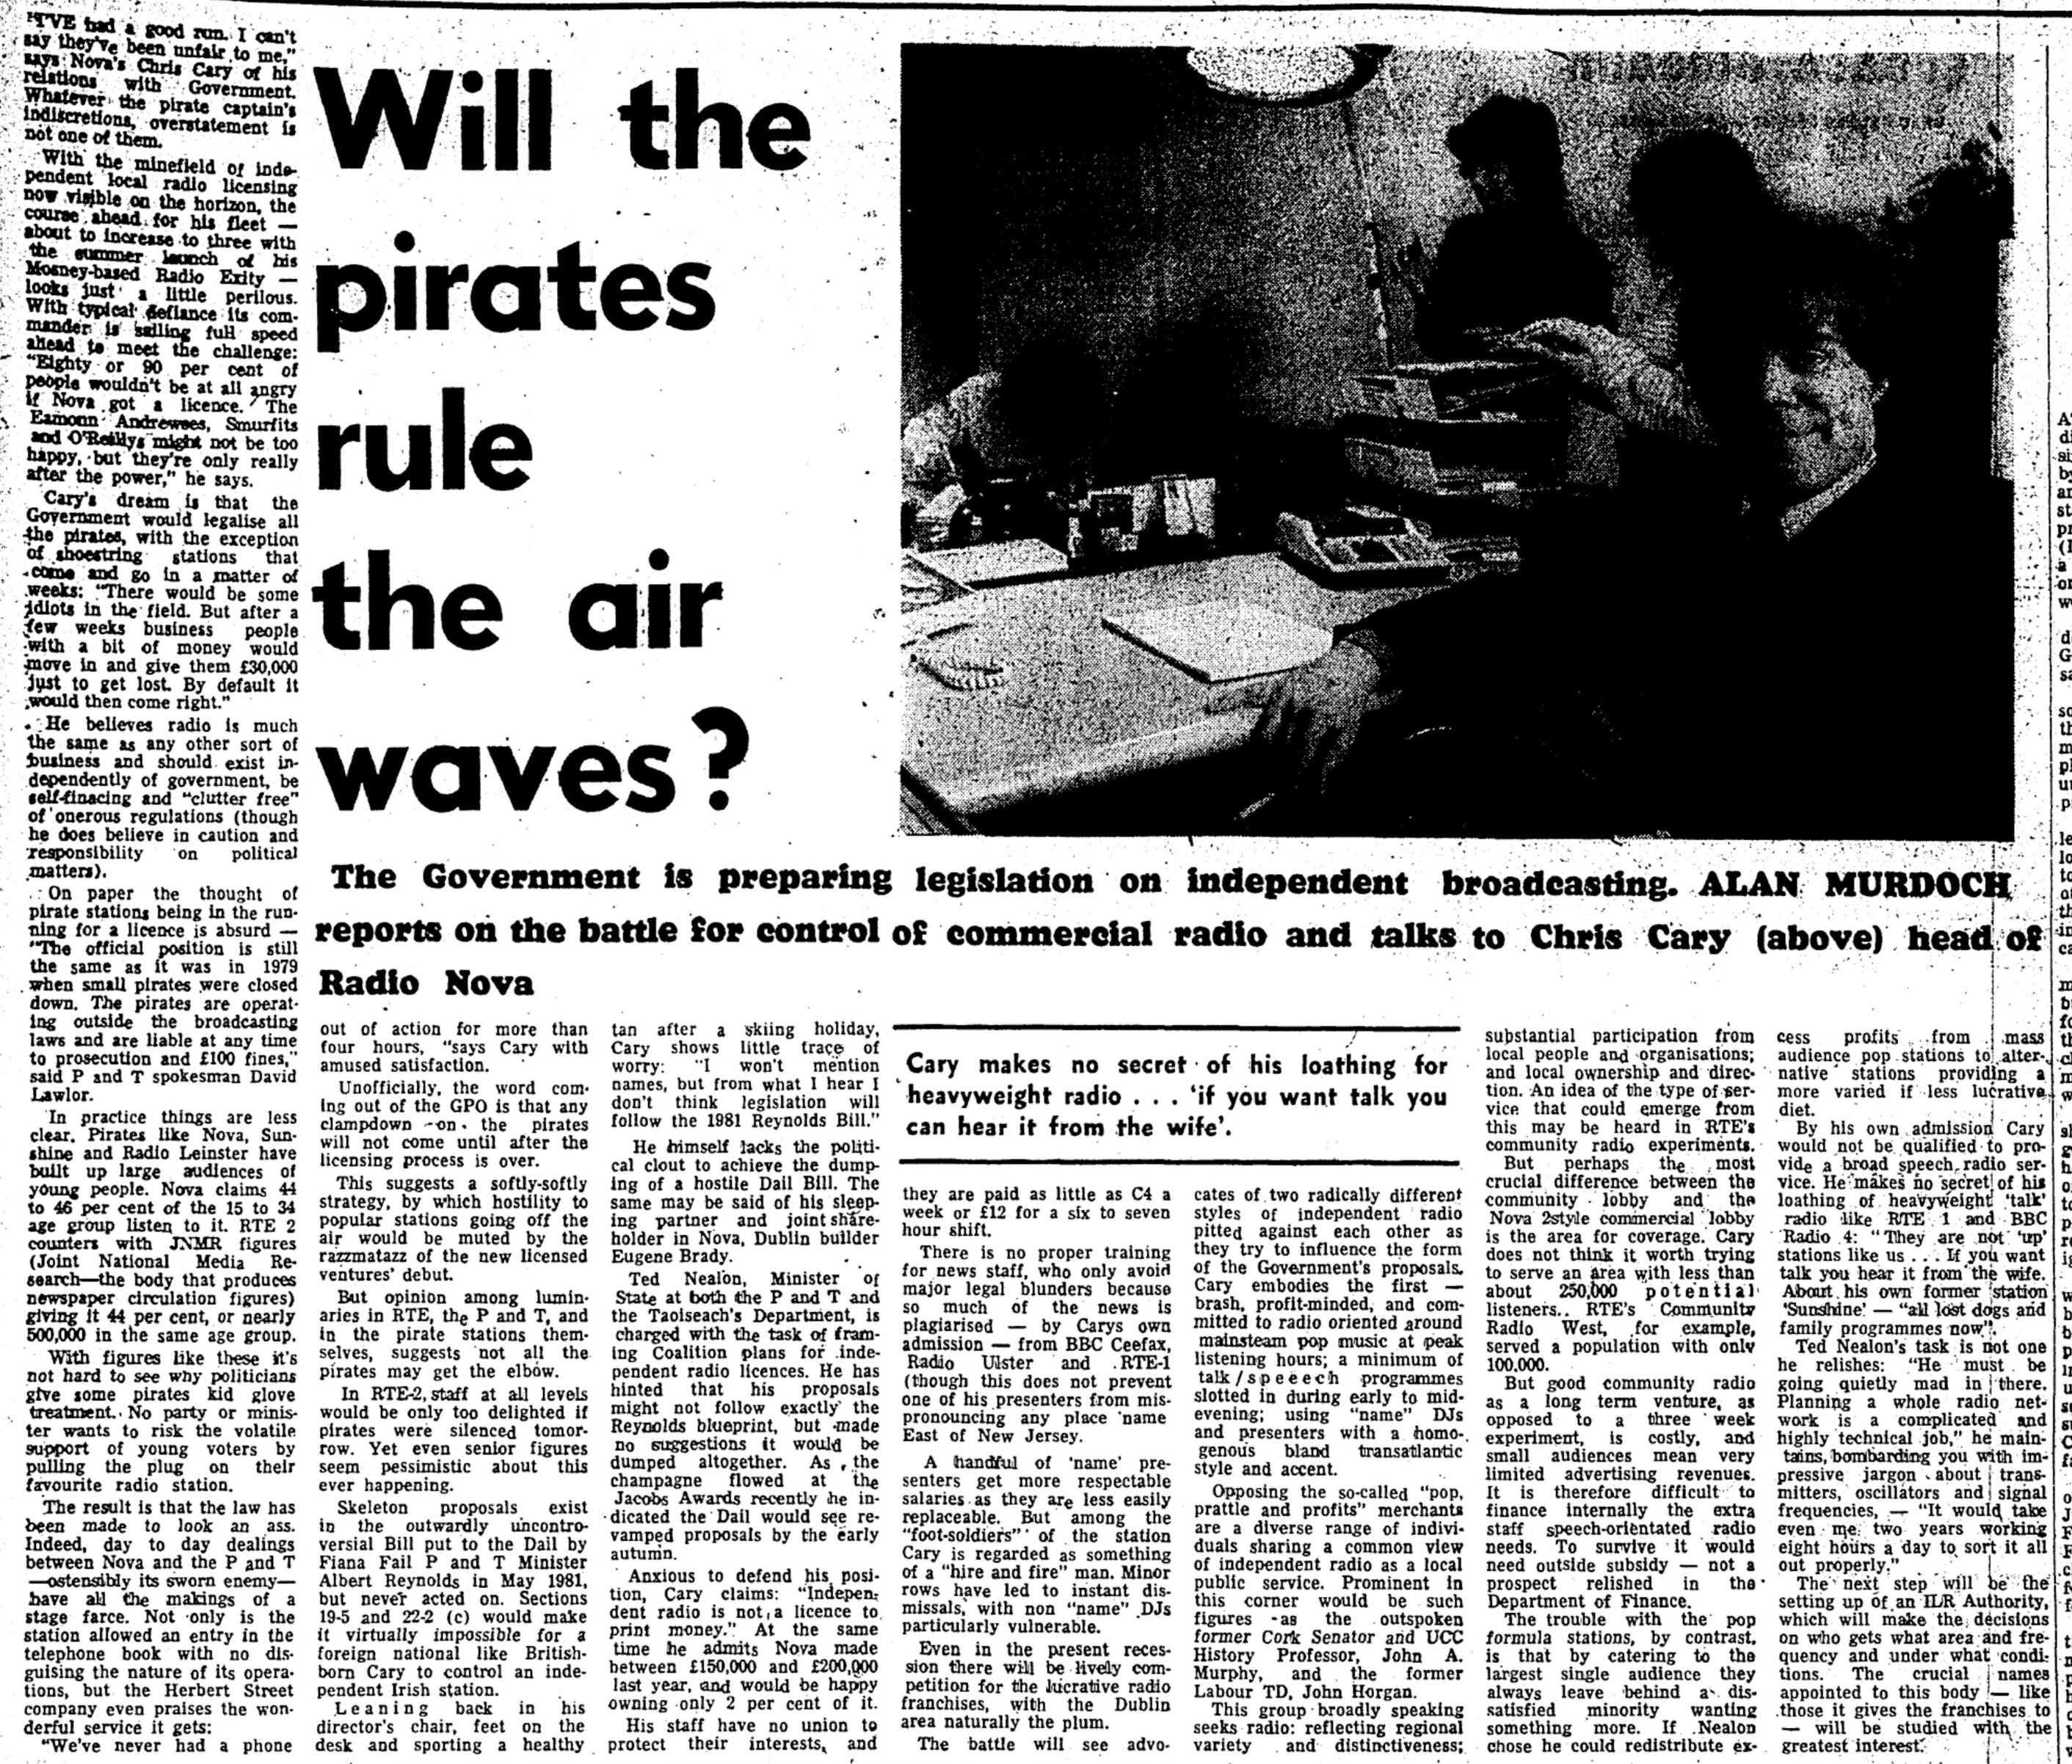 Will the pirates rule the airwaves? was a newspaper headline from the Irish Press dated April 11th 1983